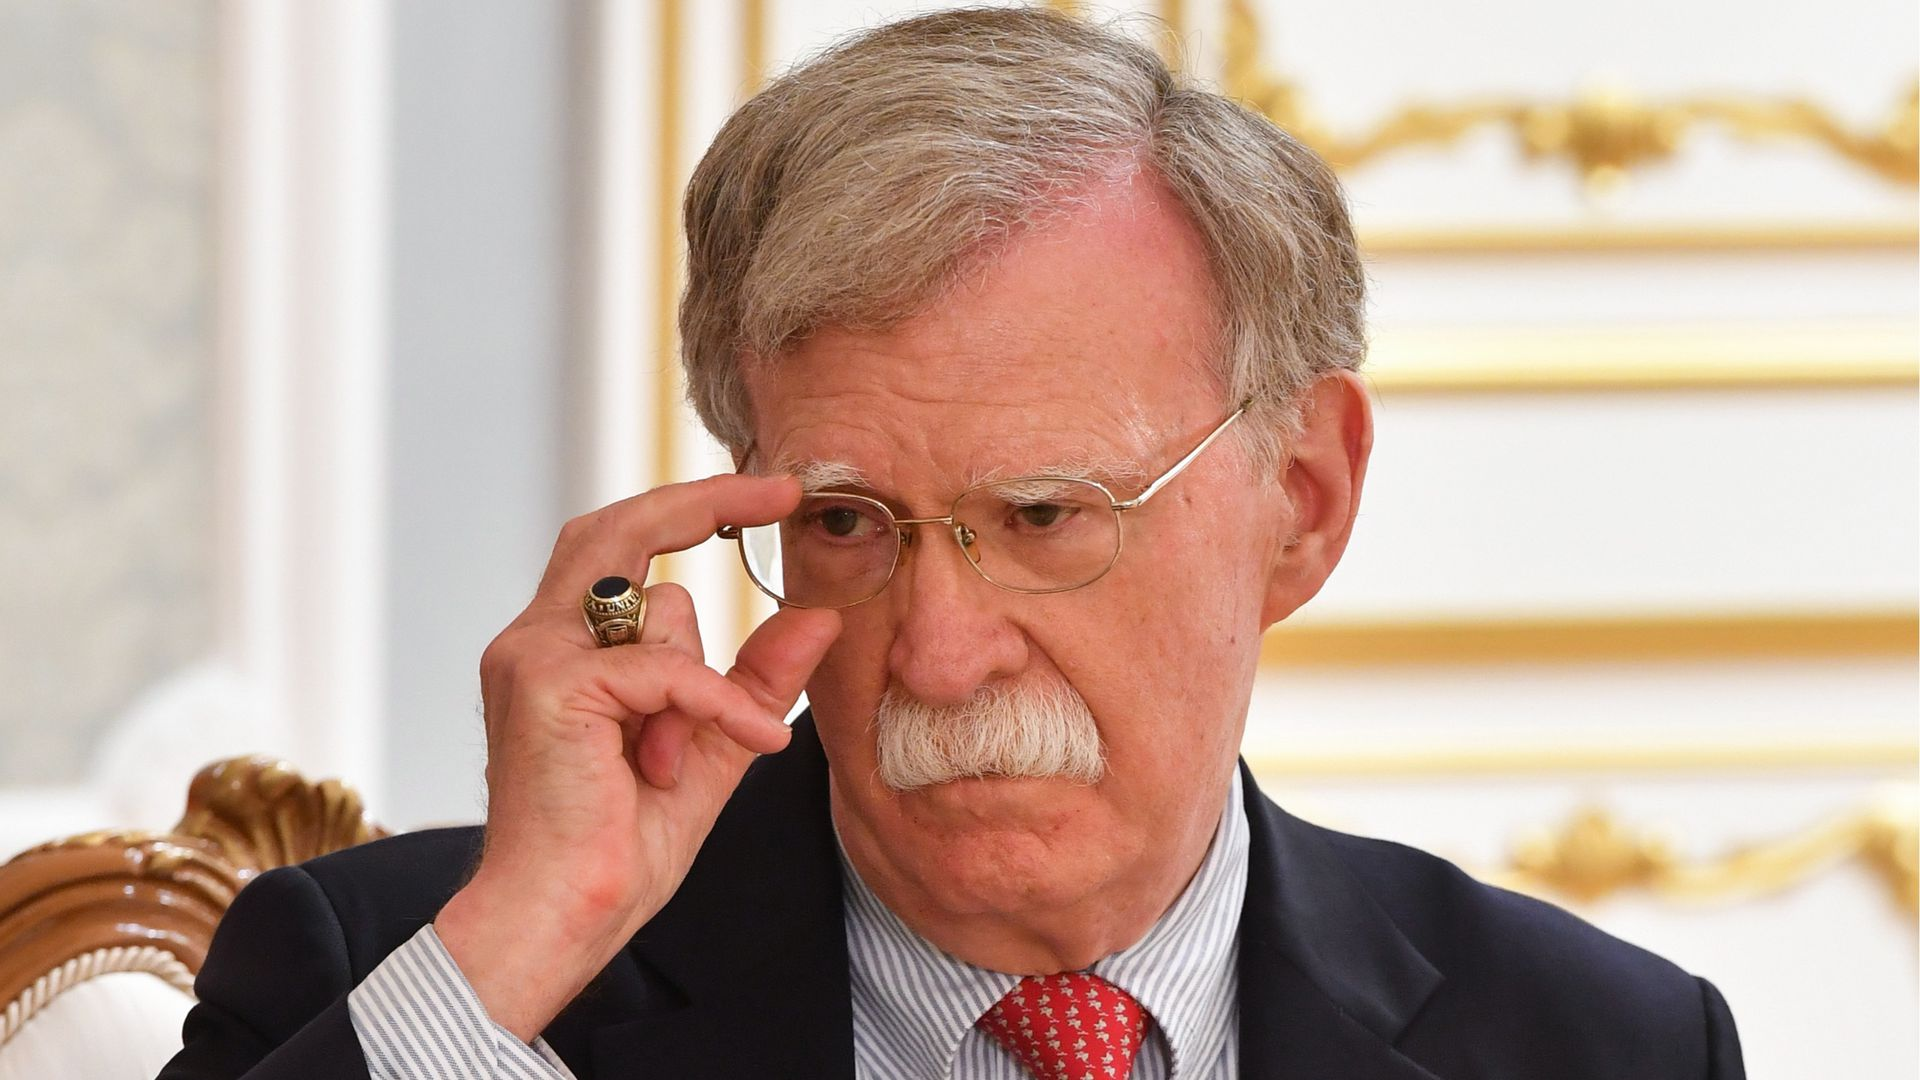 Democrats call for Bolton to testify in impeachment trial